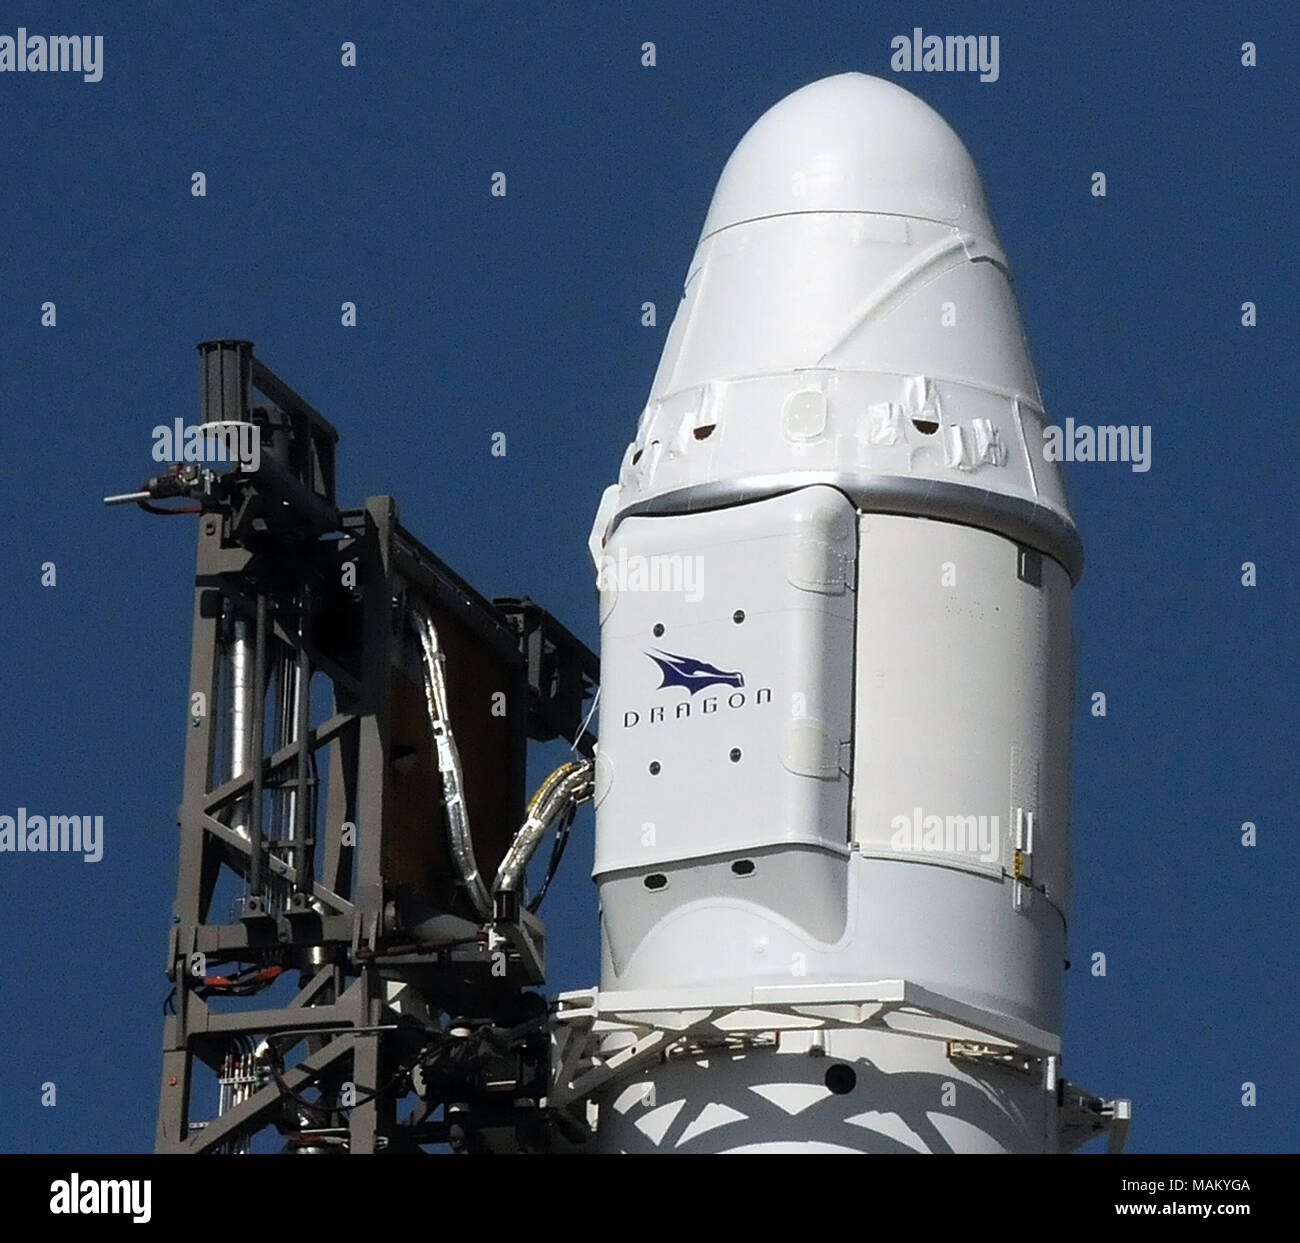 Cape Canaveral, Florida, United States. April 2, 2018 - A Space X Dragon spacecraft is seen as it sits atop a Falcon 9 rocket before launch on April 2, 2018 at launch complex 40 at Cape Canaveral Air Force Station in Florida. The Dragon spacecraft contains 5,800 pounds of supplies for the International Space Station (ISS). This is the 14th ISS resupply mission by SpaceX for NASA. (Paul Hennessy/Alamy) Credit: Paul Hennessy/Alamy Live News - Stock Image